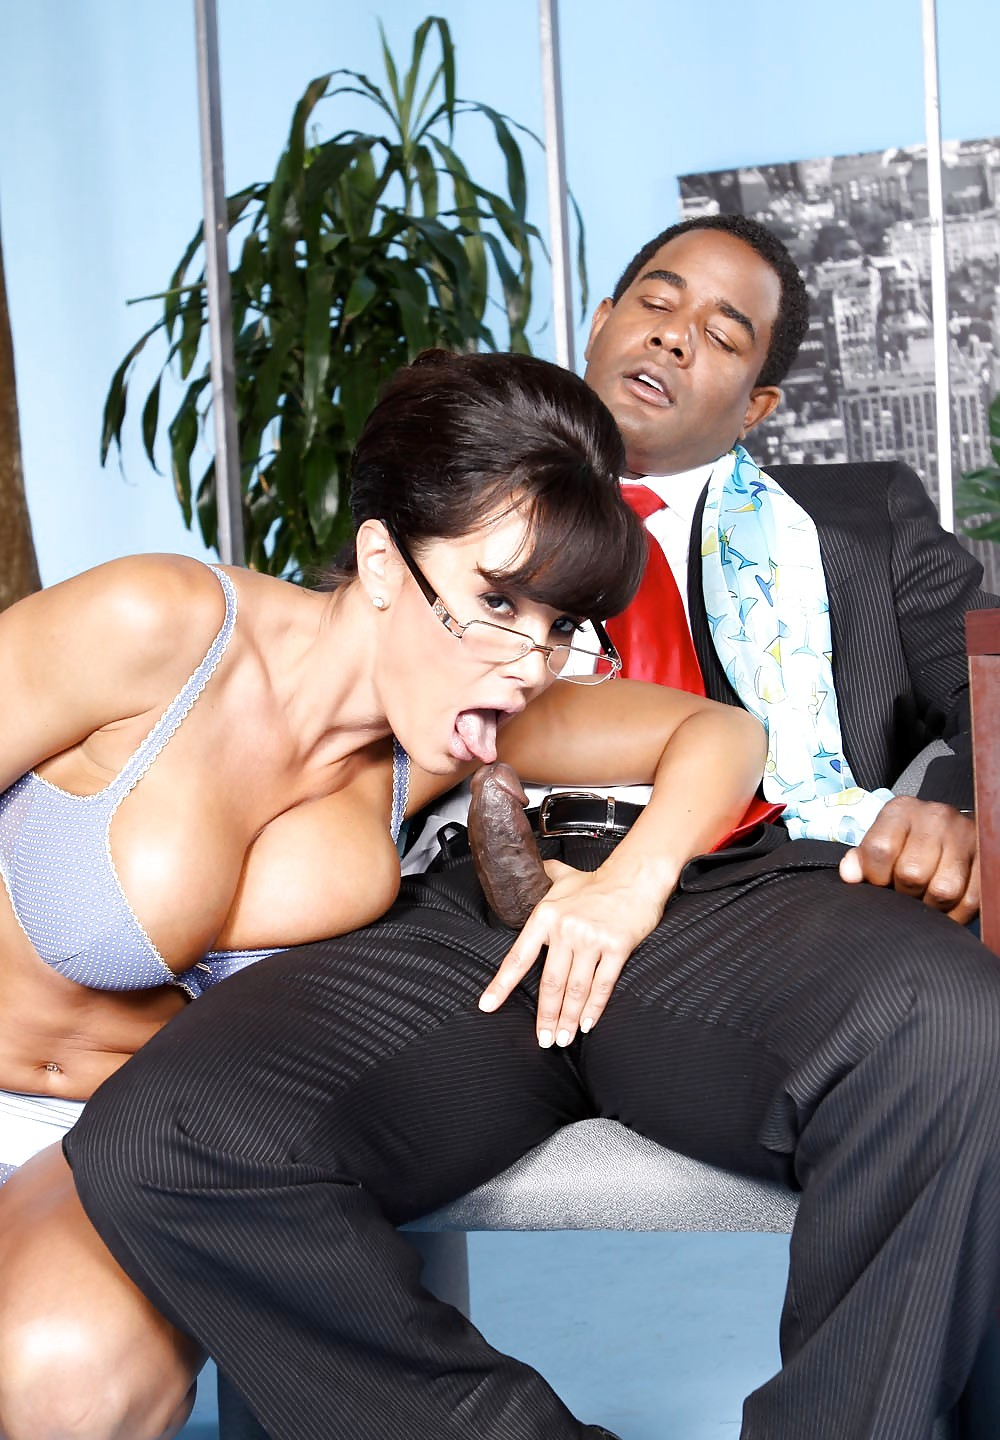 Lisa ann hustler megaupload link — photo 12